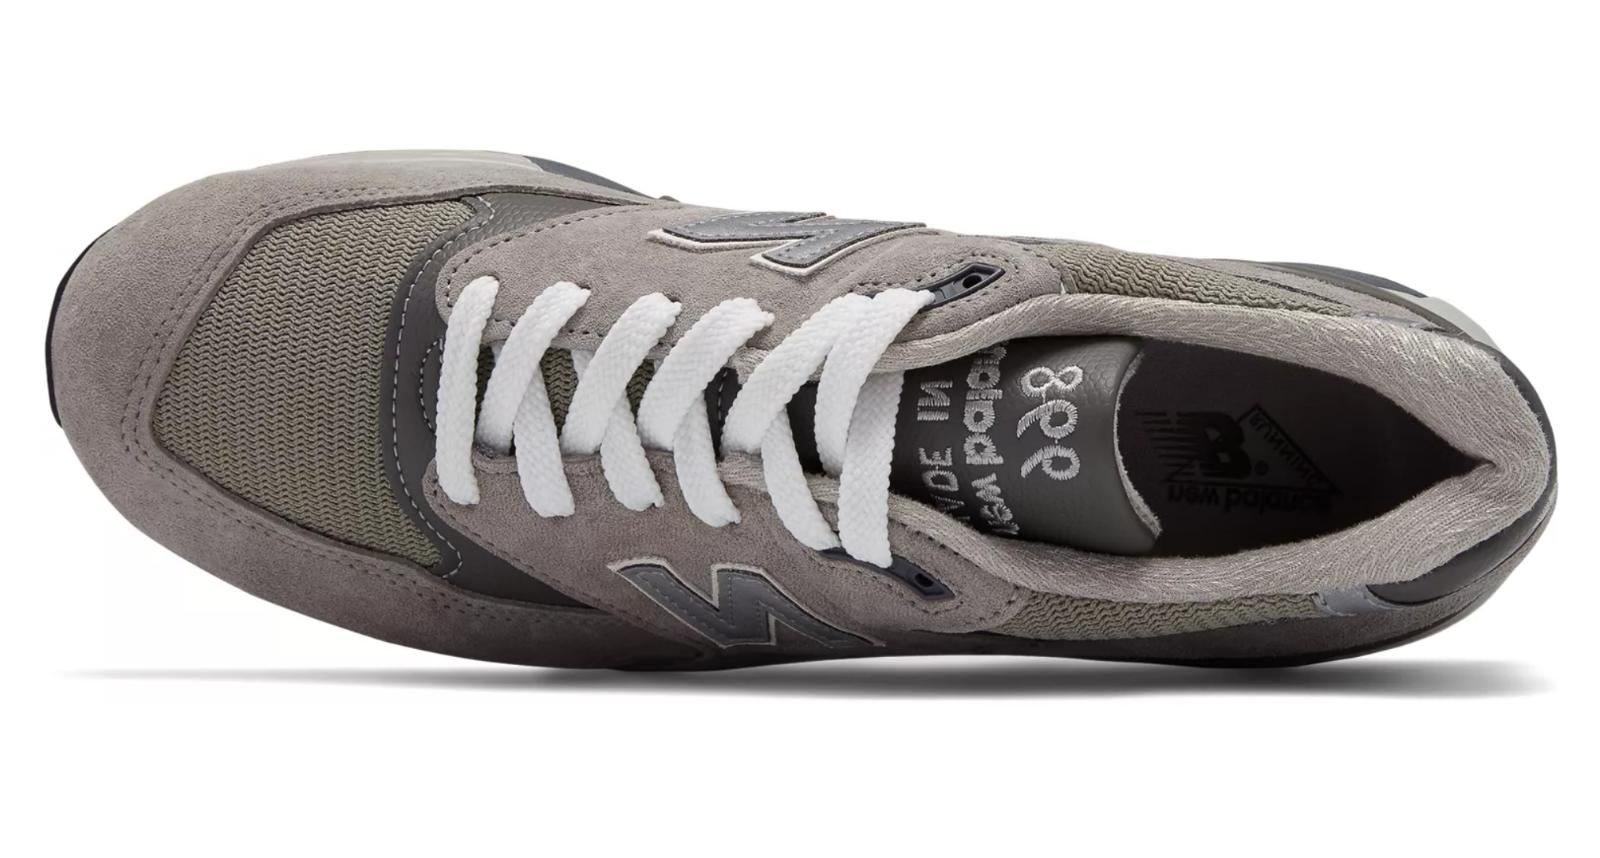 New Men's Balance 998 Shoes Sneakers 11.5 Wide